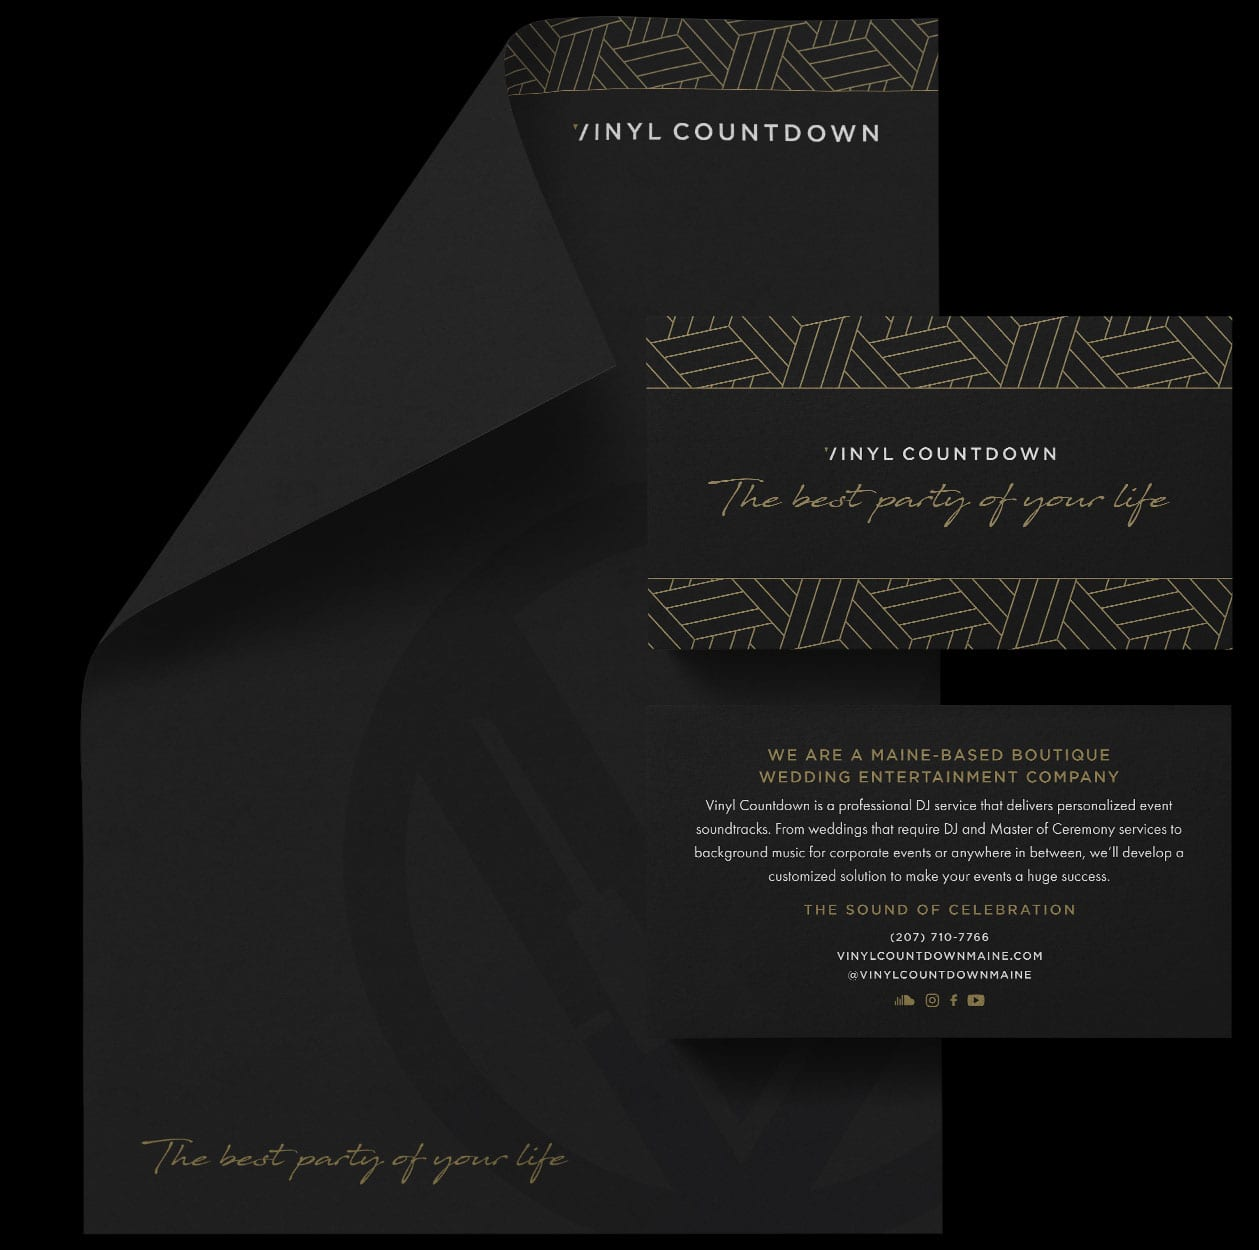 Letterhead and Postcard on Black Background